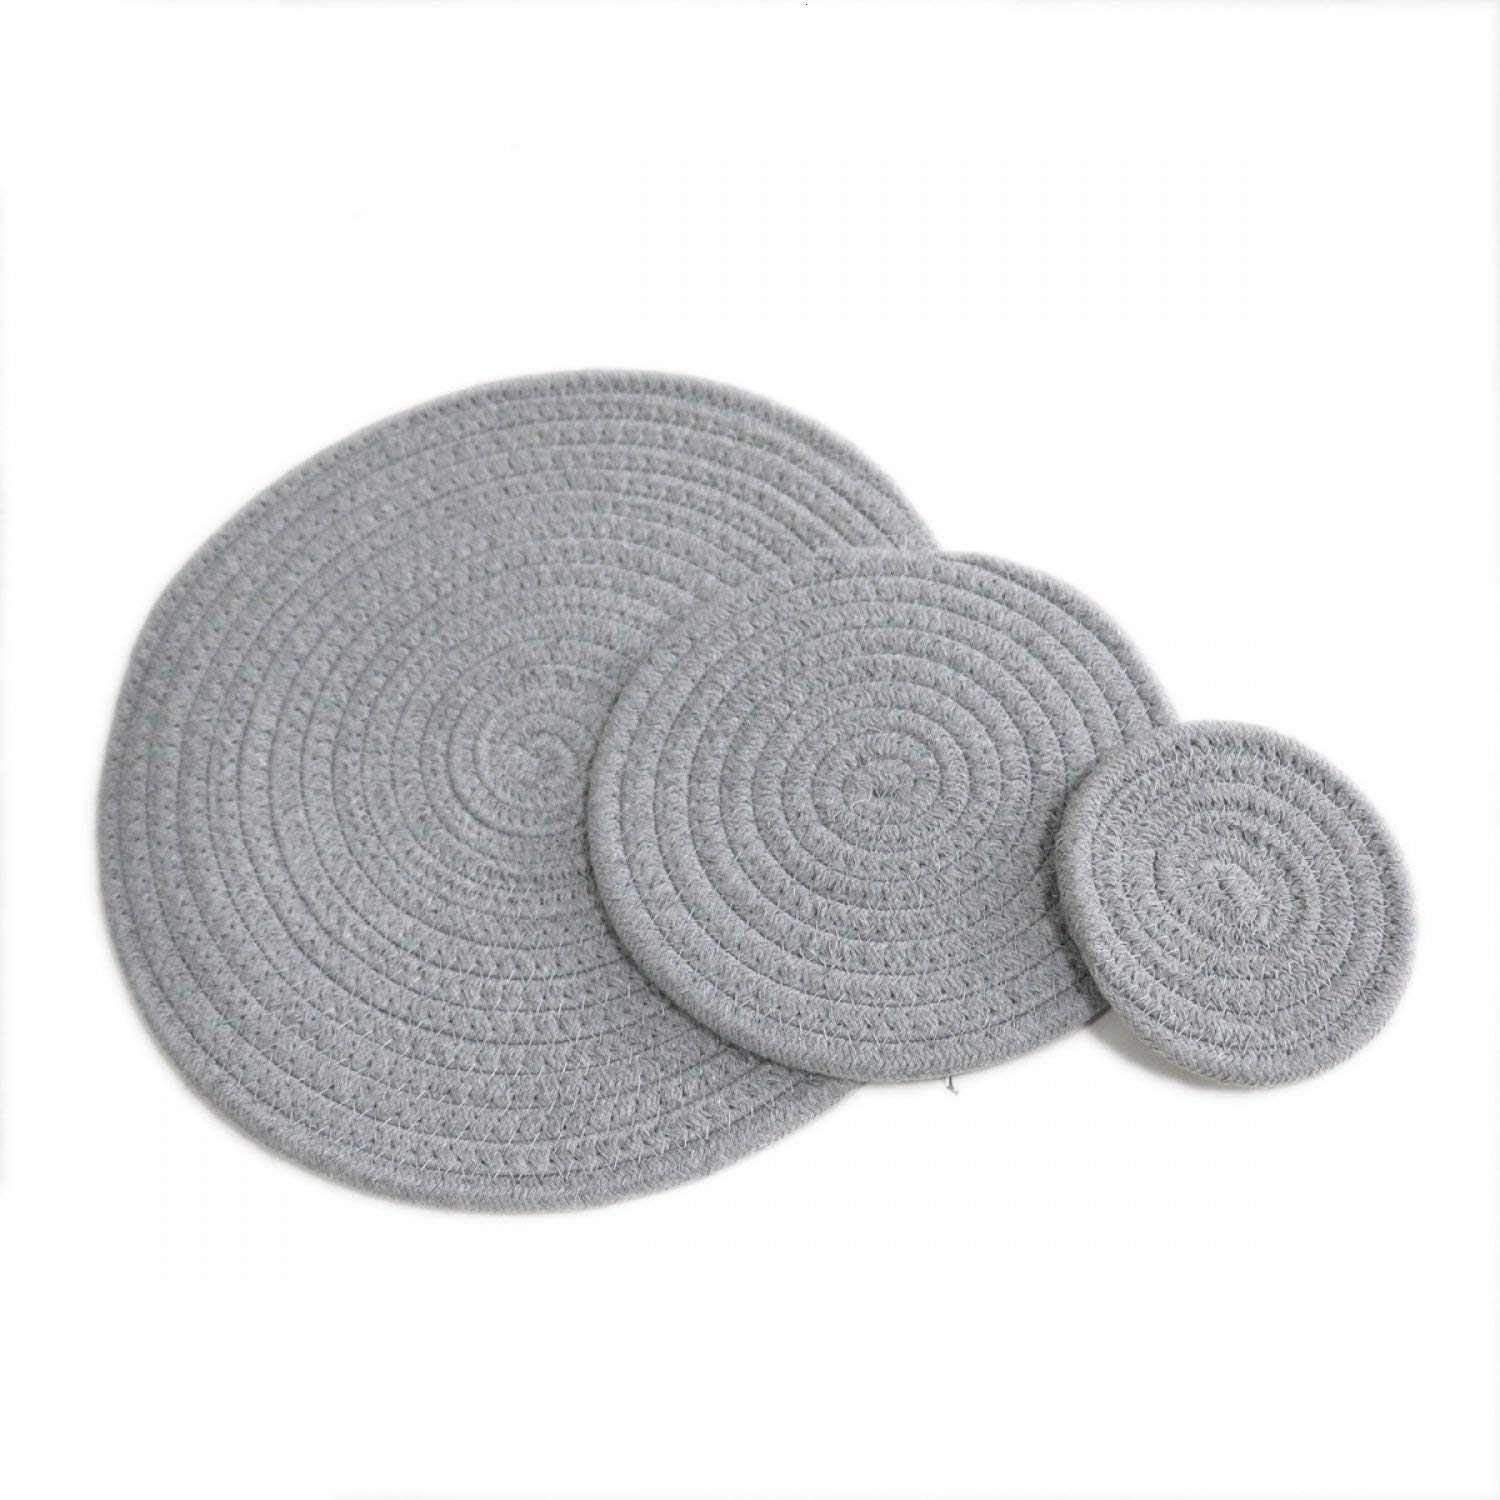 Round Cotton Rope Table Placemats